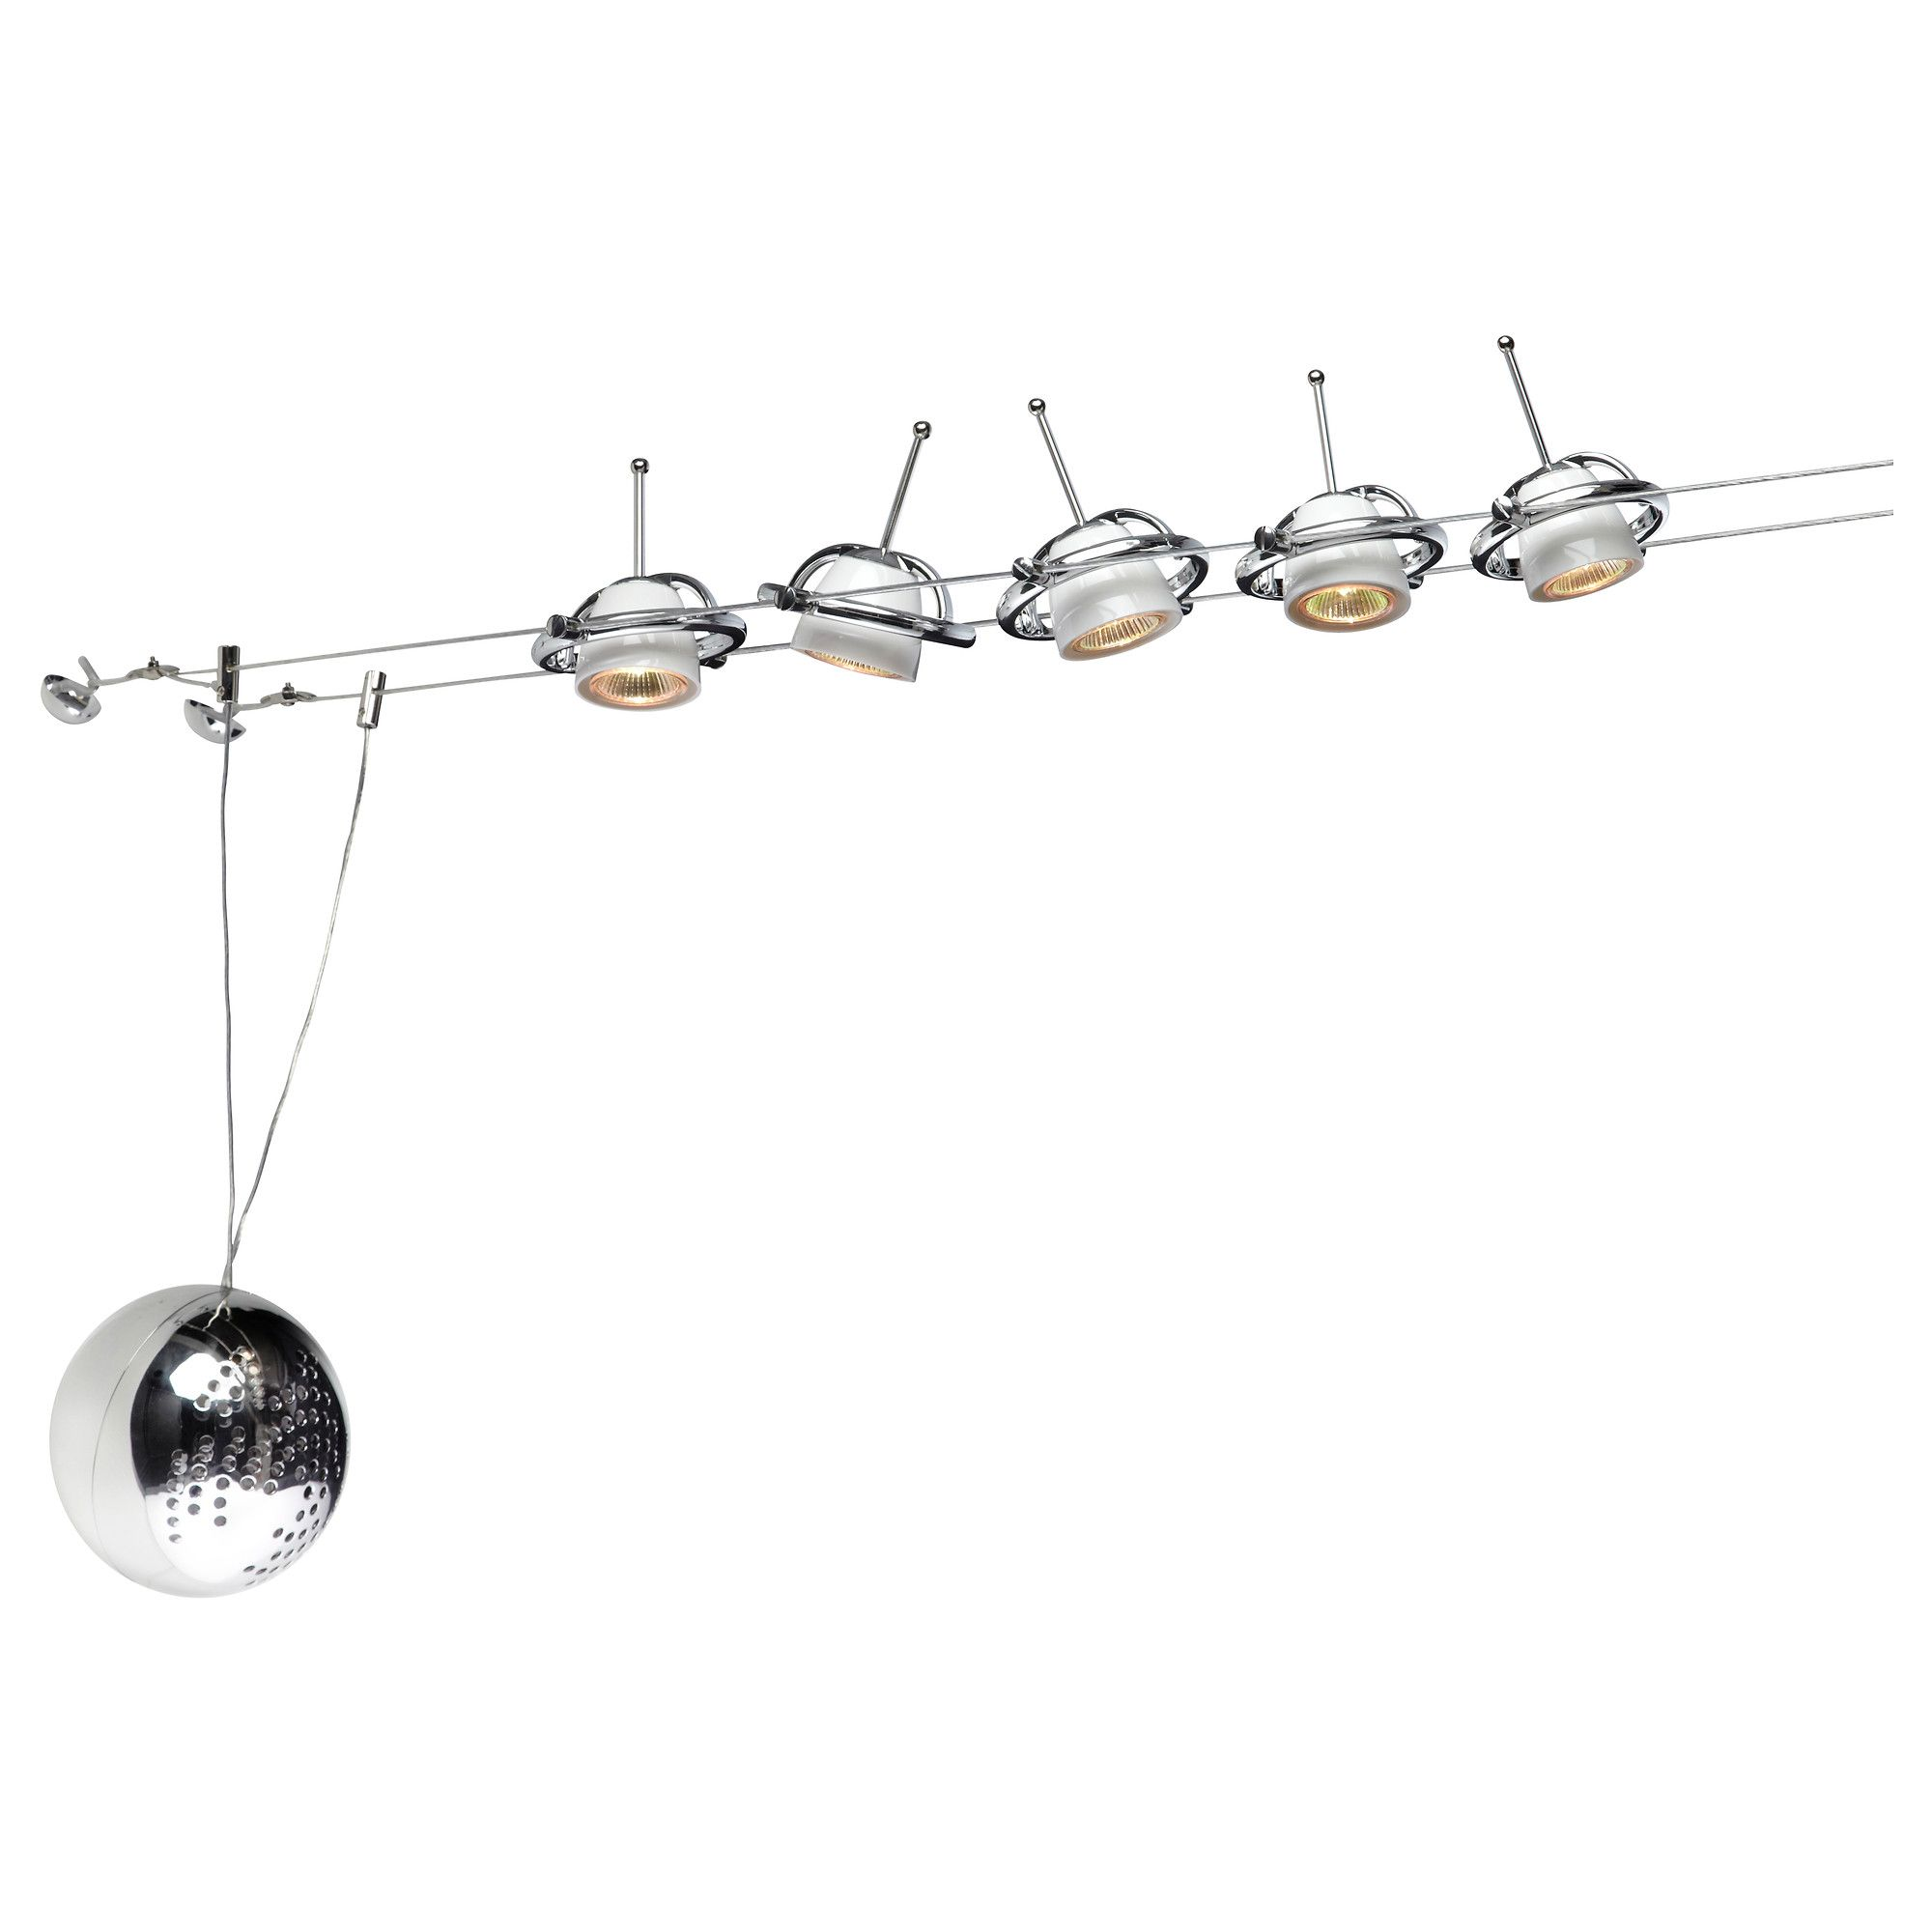 Wire Cable Lighting For Along Beams With Mini Spot